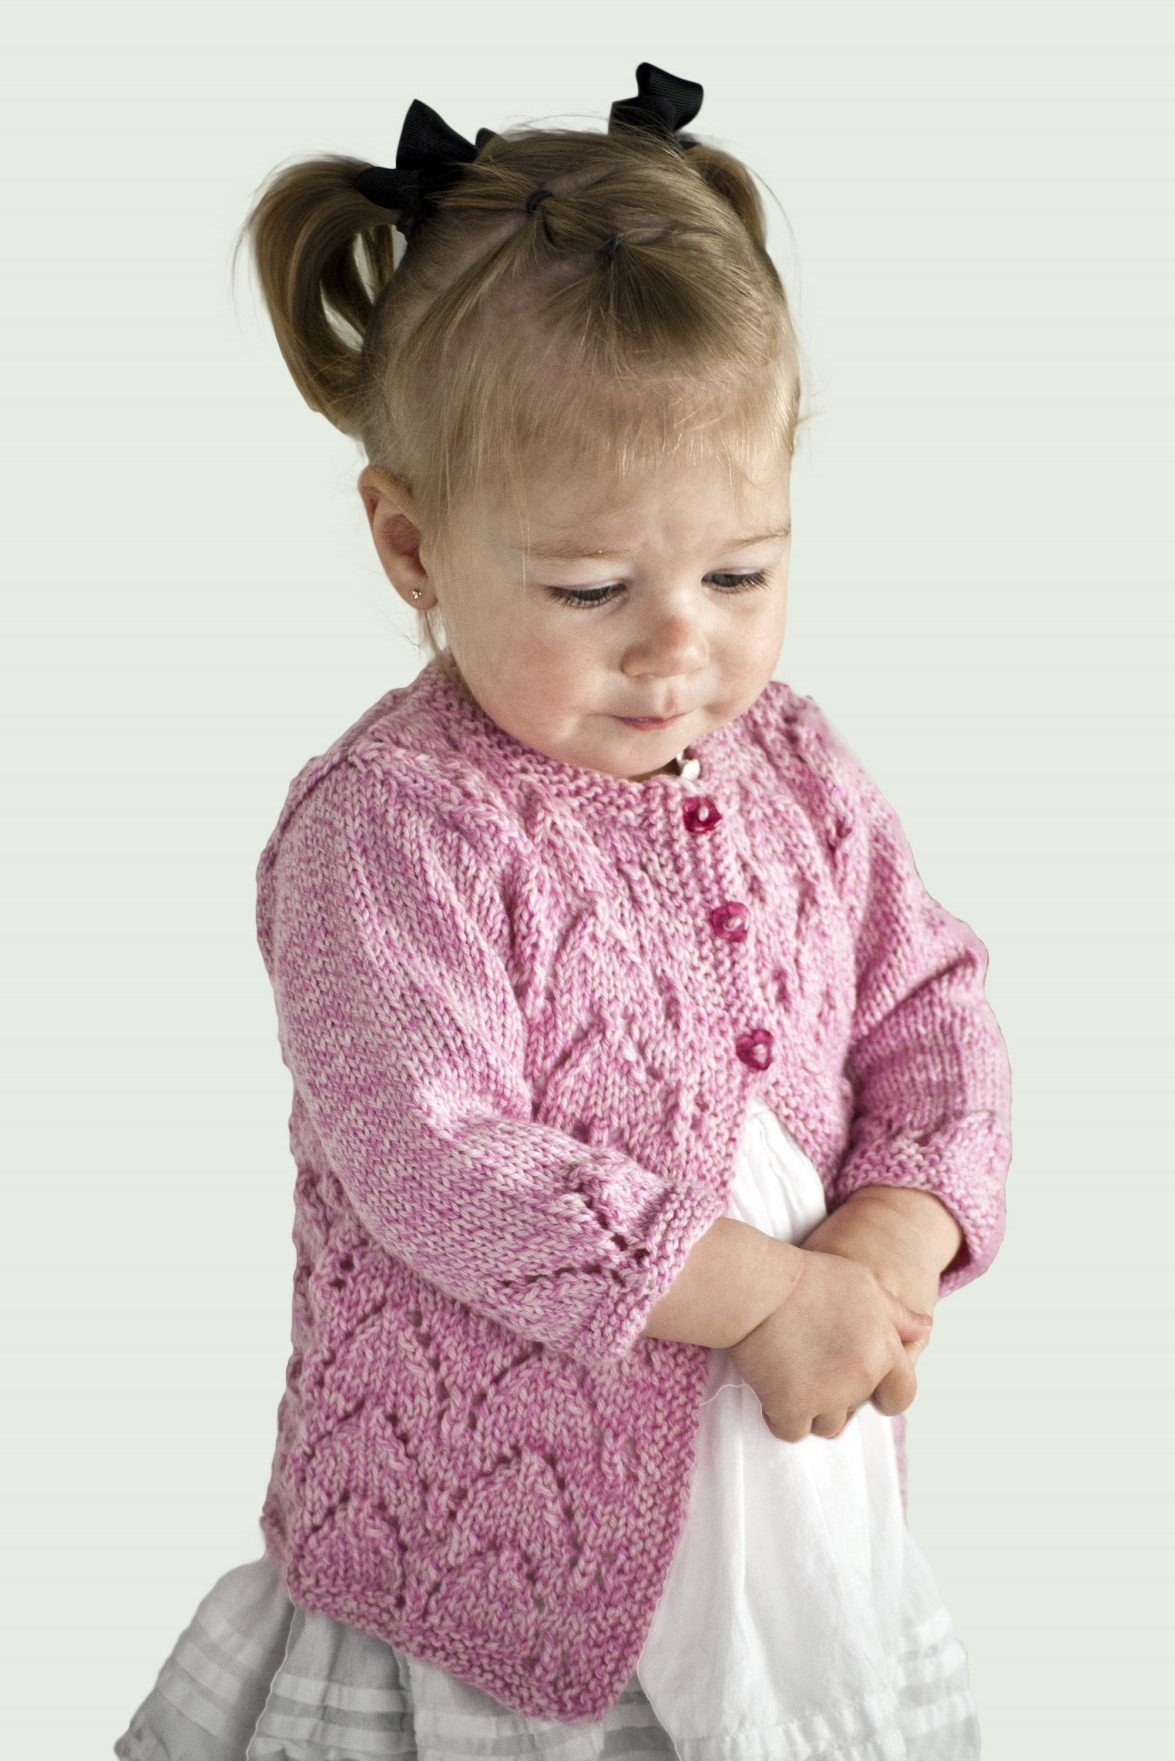 Beautiful Free Knitting Patterns for toddlers to Crochet Knitting Patterns for Childrens Sweaters Of Charming 47 Models Knitting Patterns for Childrens Sweaters